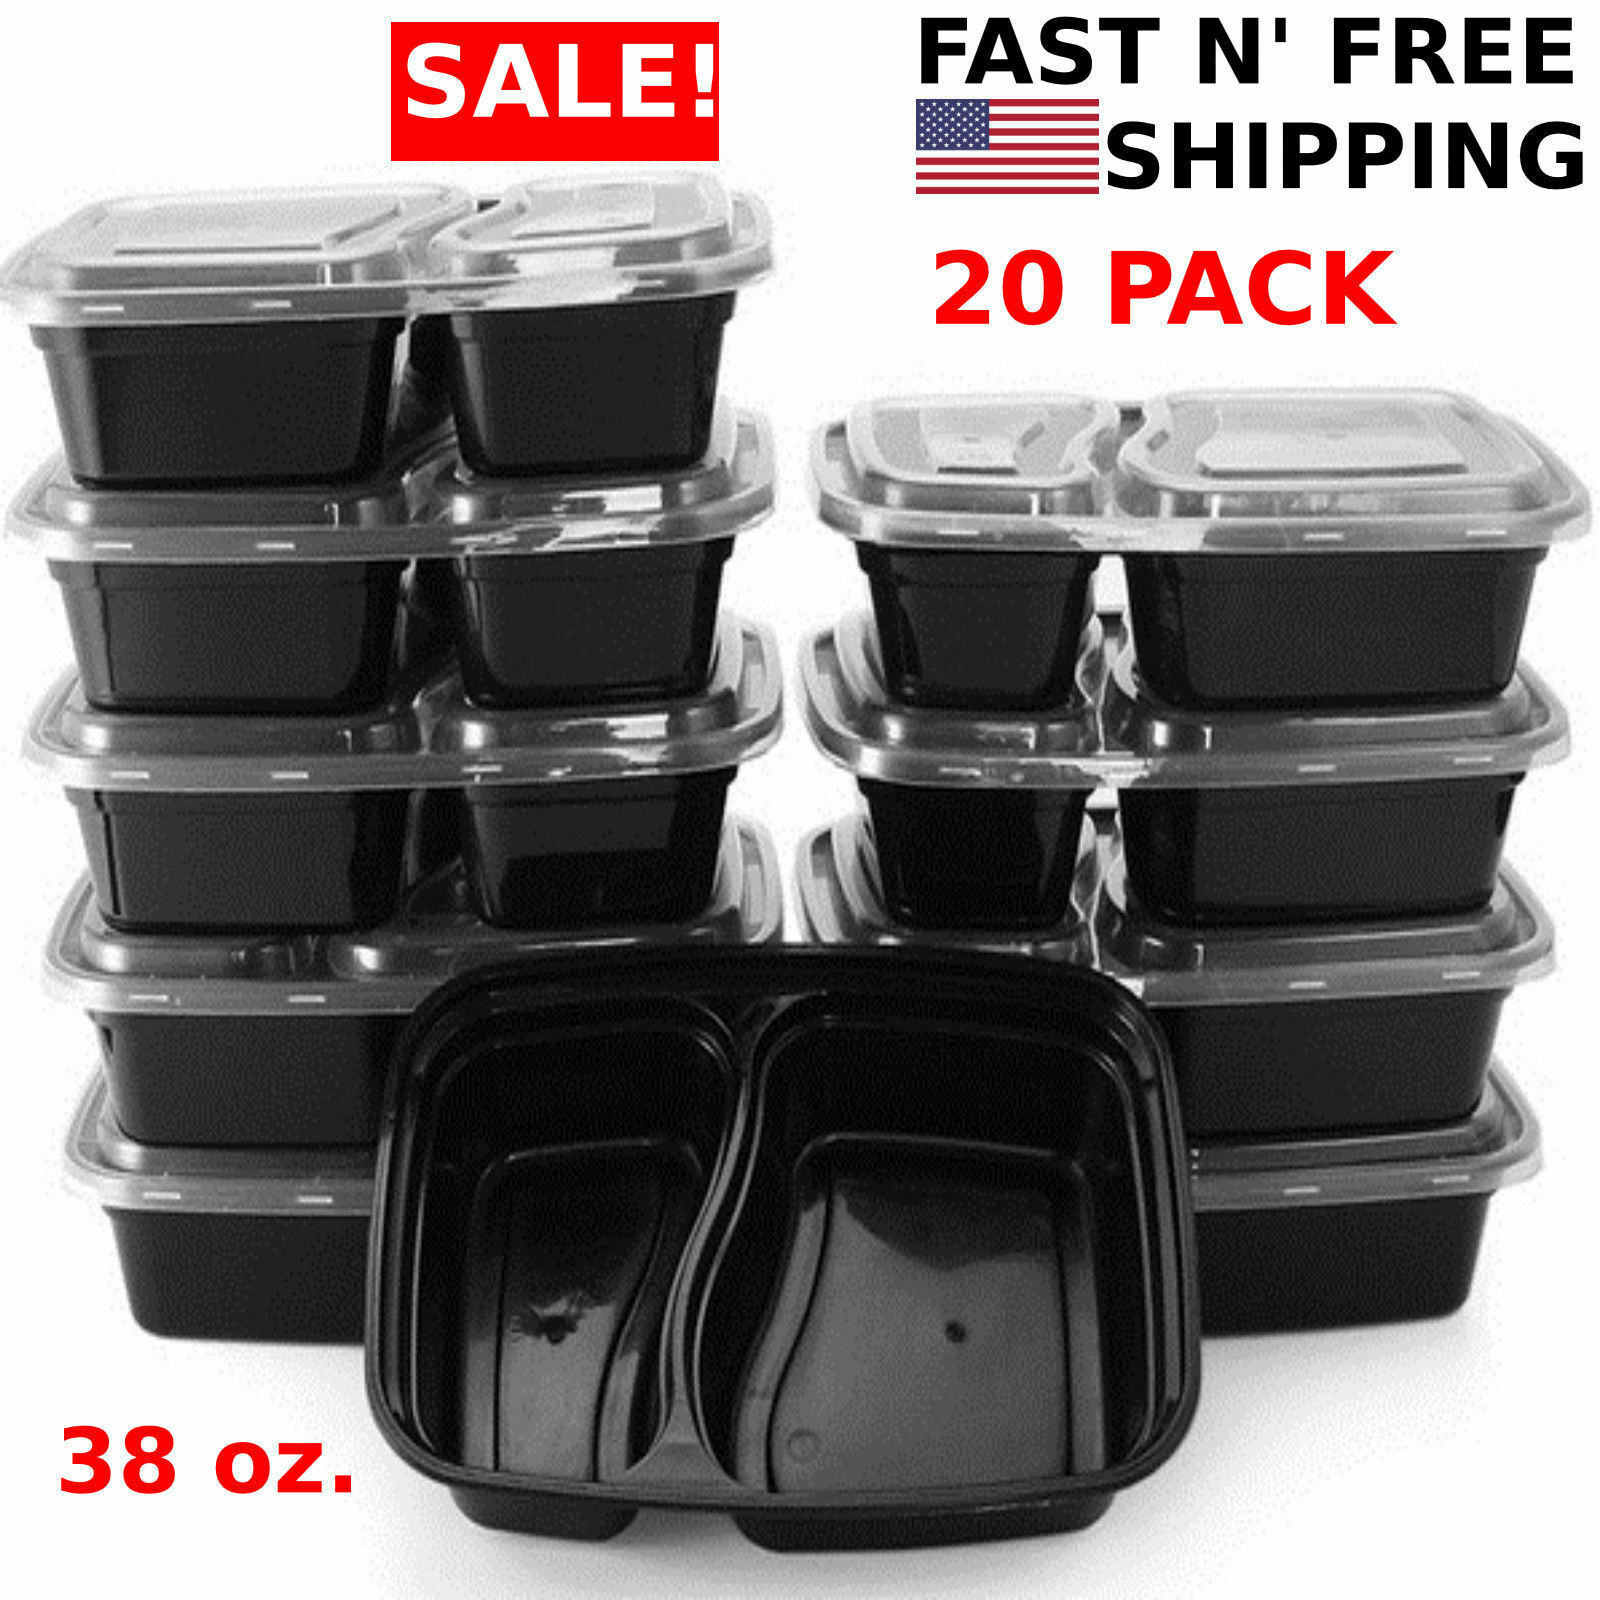 20 Meal Prep Containers 2 Compartment Food Storage Plastic Reusable Microwavable 1